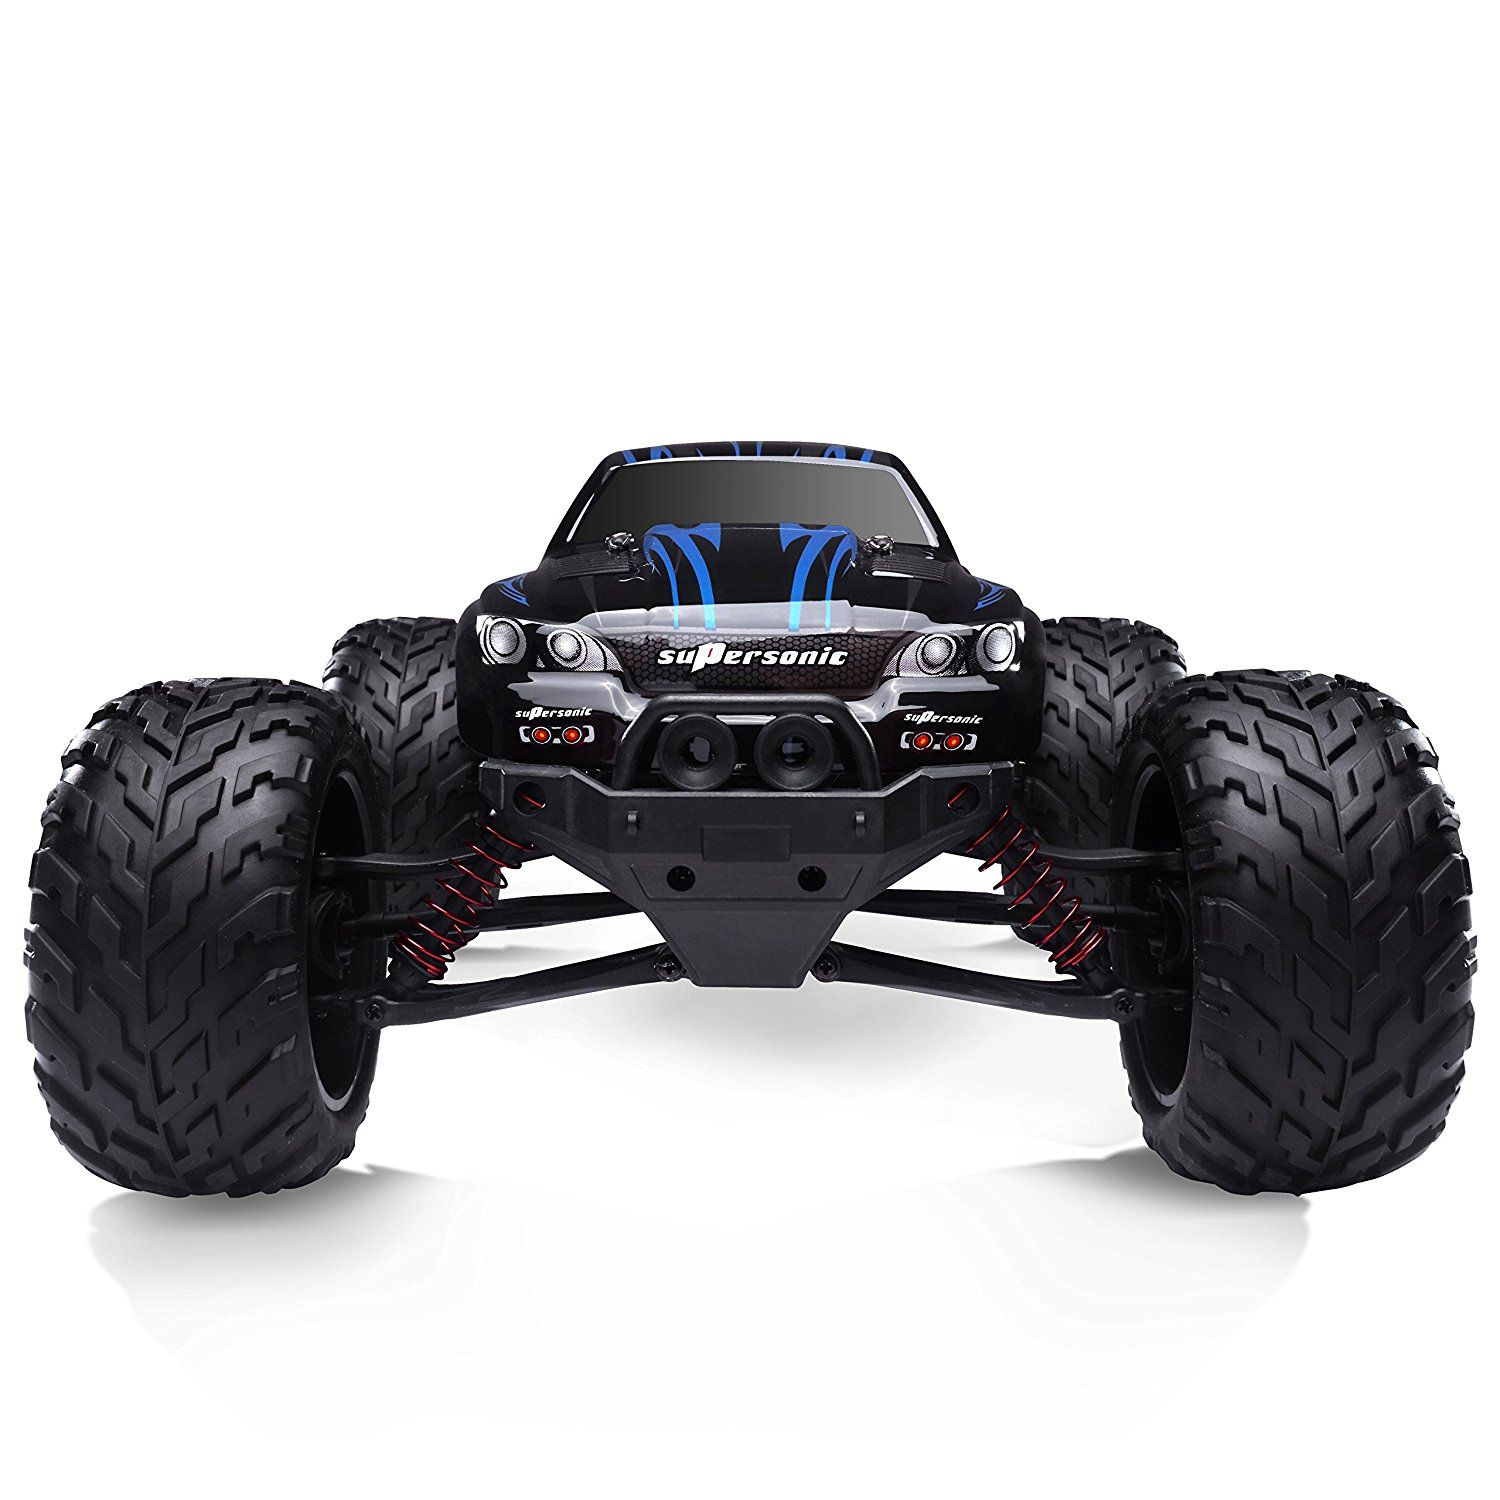 Rc Cars Electric Off Road - Best Car 2017 Electric Cars With Remote Control on electric fan cars, electric power cars, electric toys cars, electric cars diecast, motorized ride on cars, electric clock cars, electric motor cars, electric rc cars, electric slot cars, electric dirt cars,